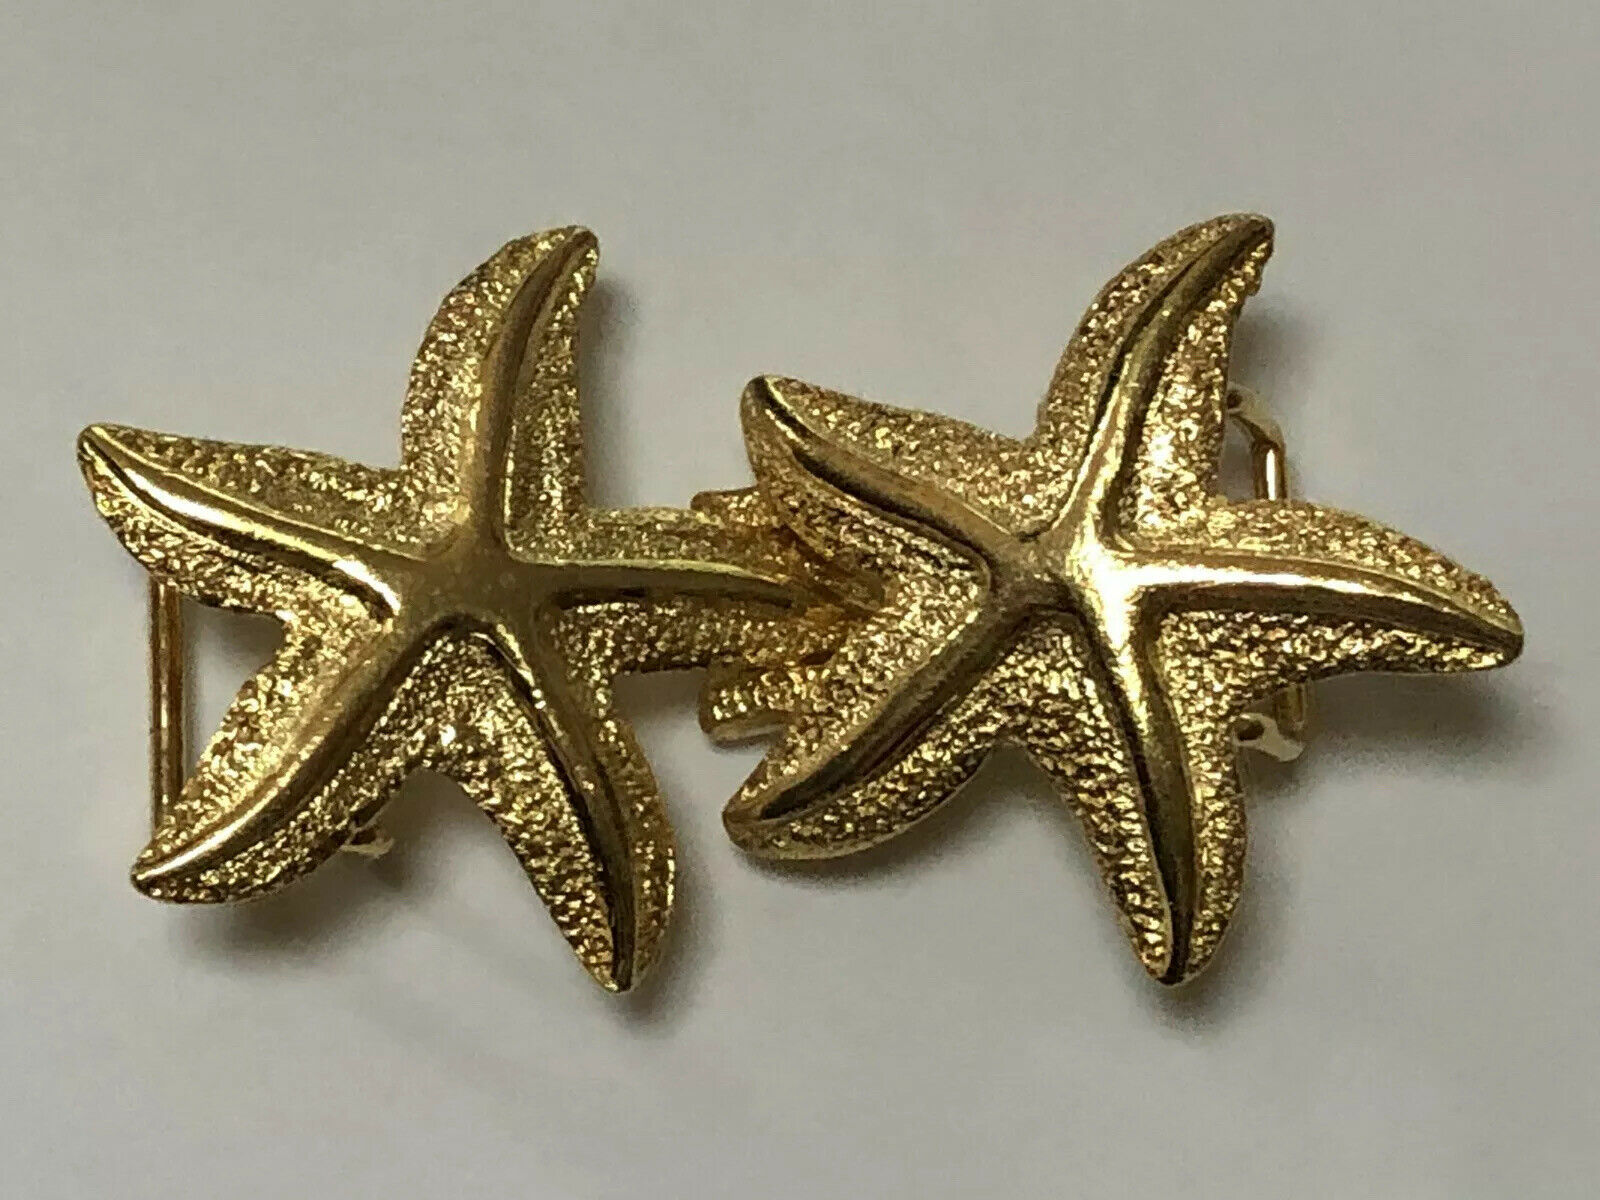 Lot of 100+ NEW Women's Gold Plated 2 pc STARFISH BELT BUCKLES Below Wholesale!